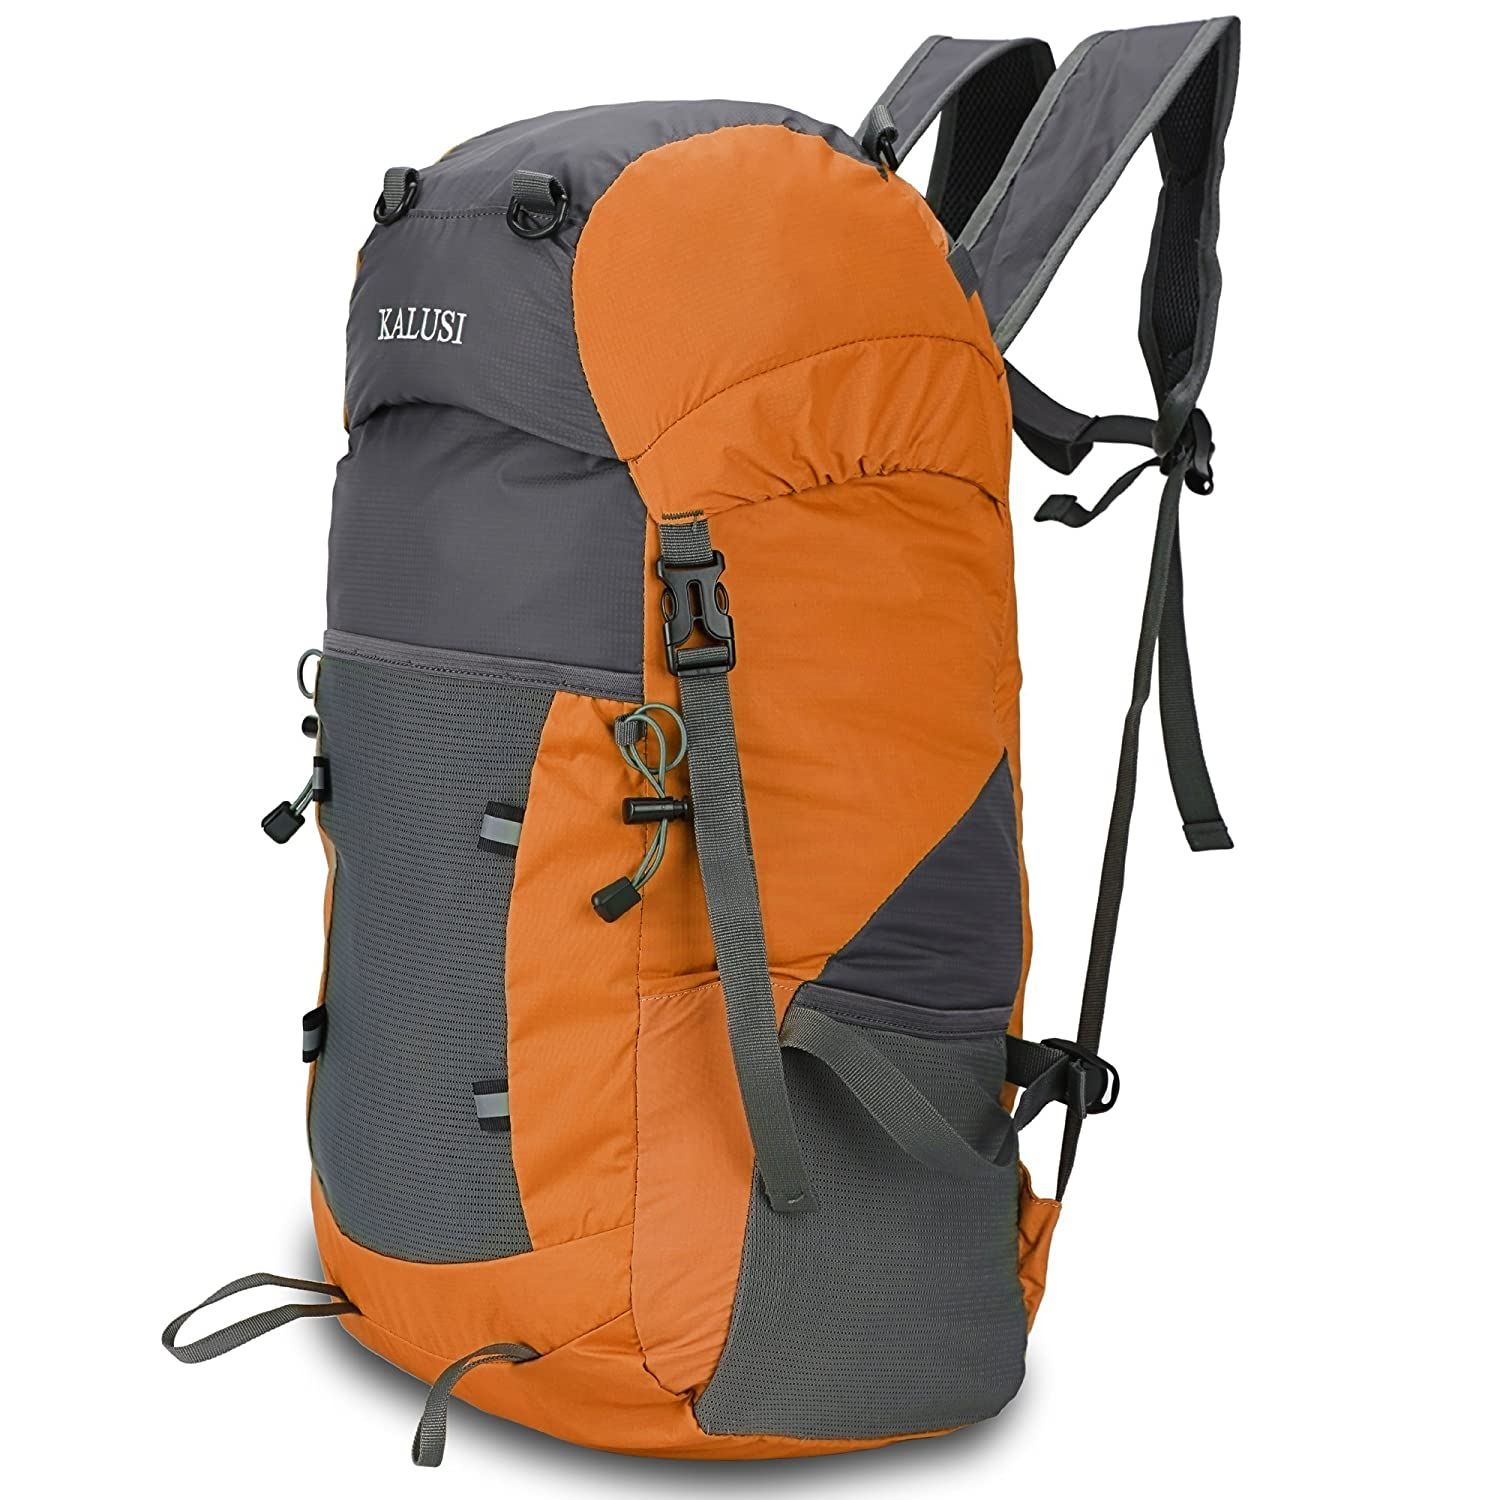 85%OFF Kalusi Large 35l Lightweight Waterproof Hiking Daypack ,Foldable Outdoor Backpack